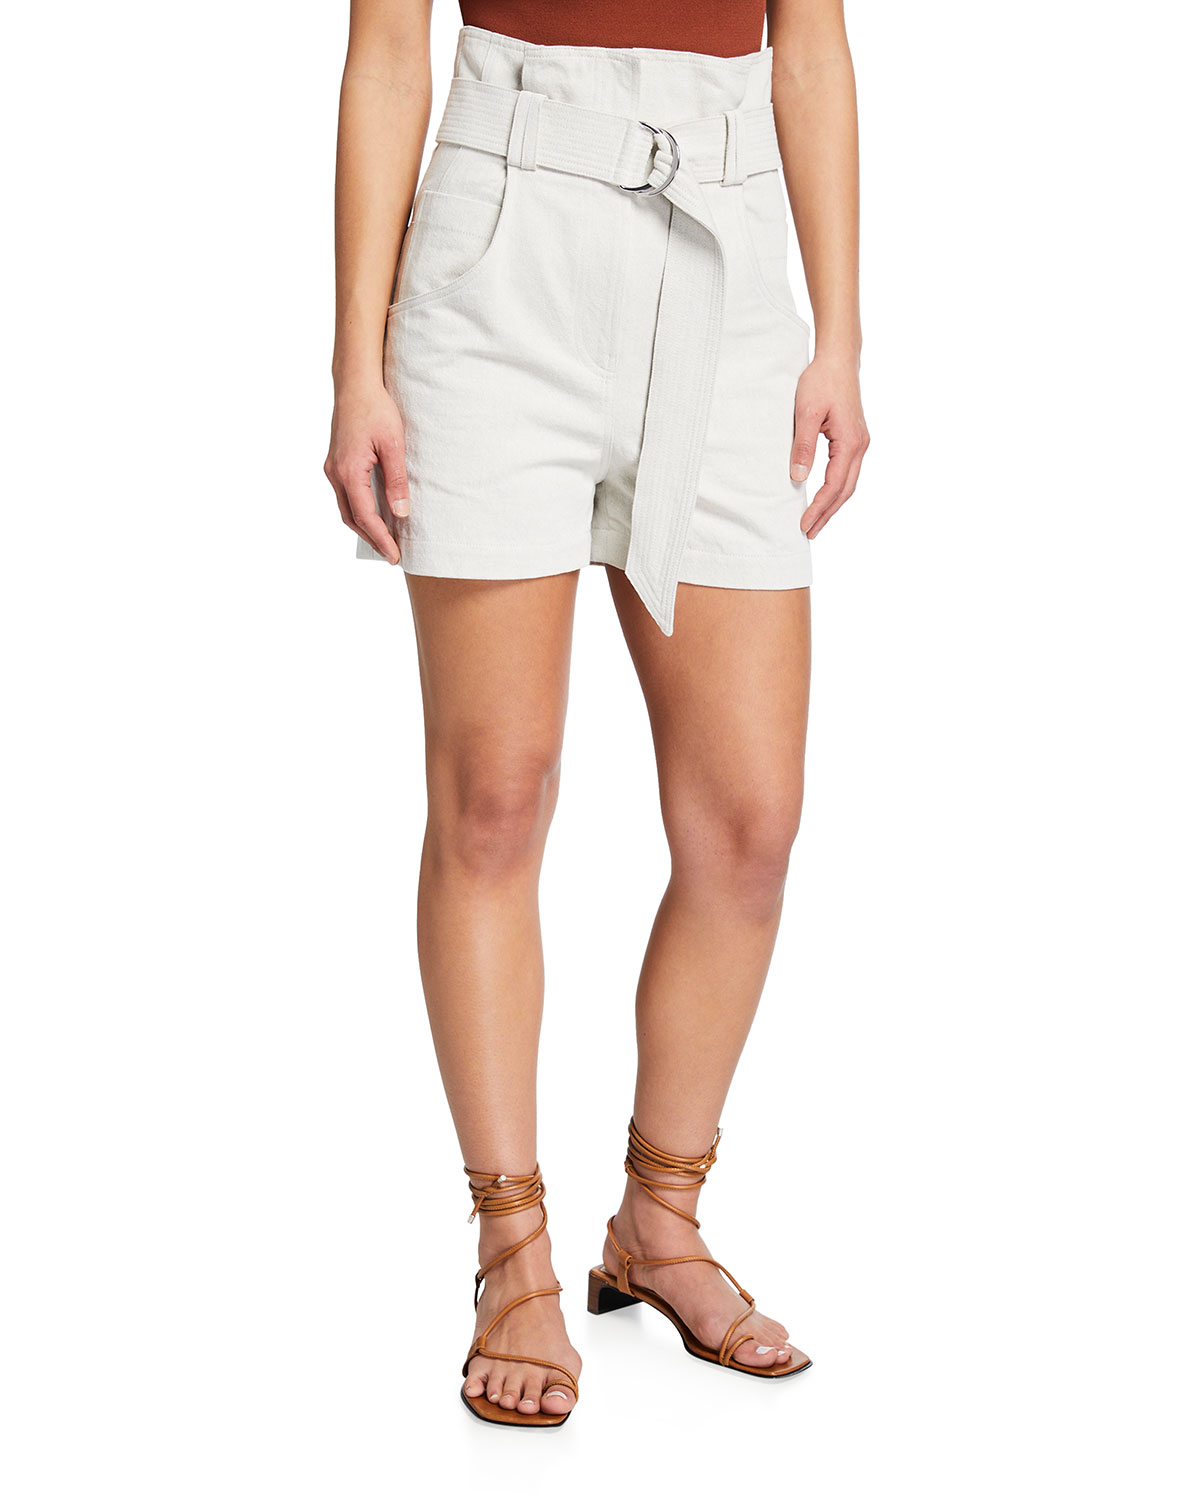 Pirlo Belted High-Rise Shorts